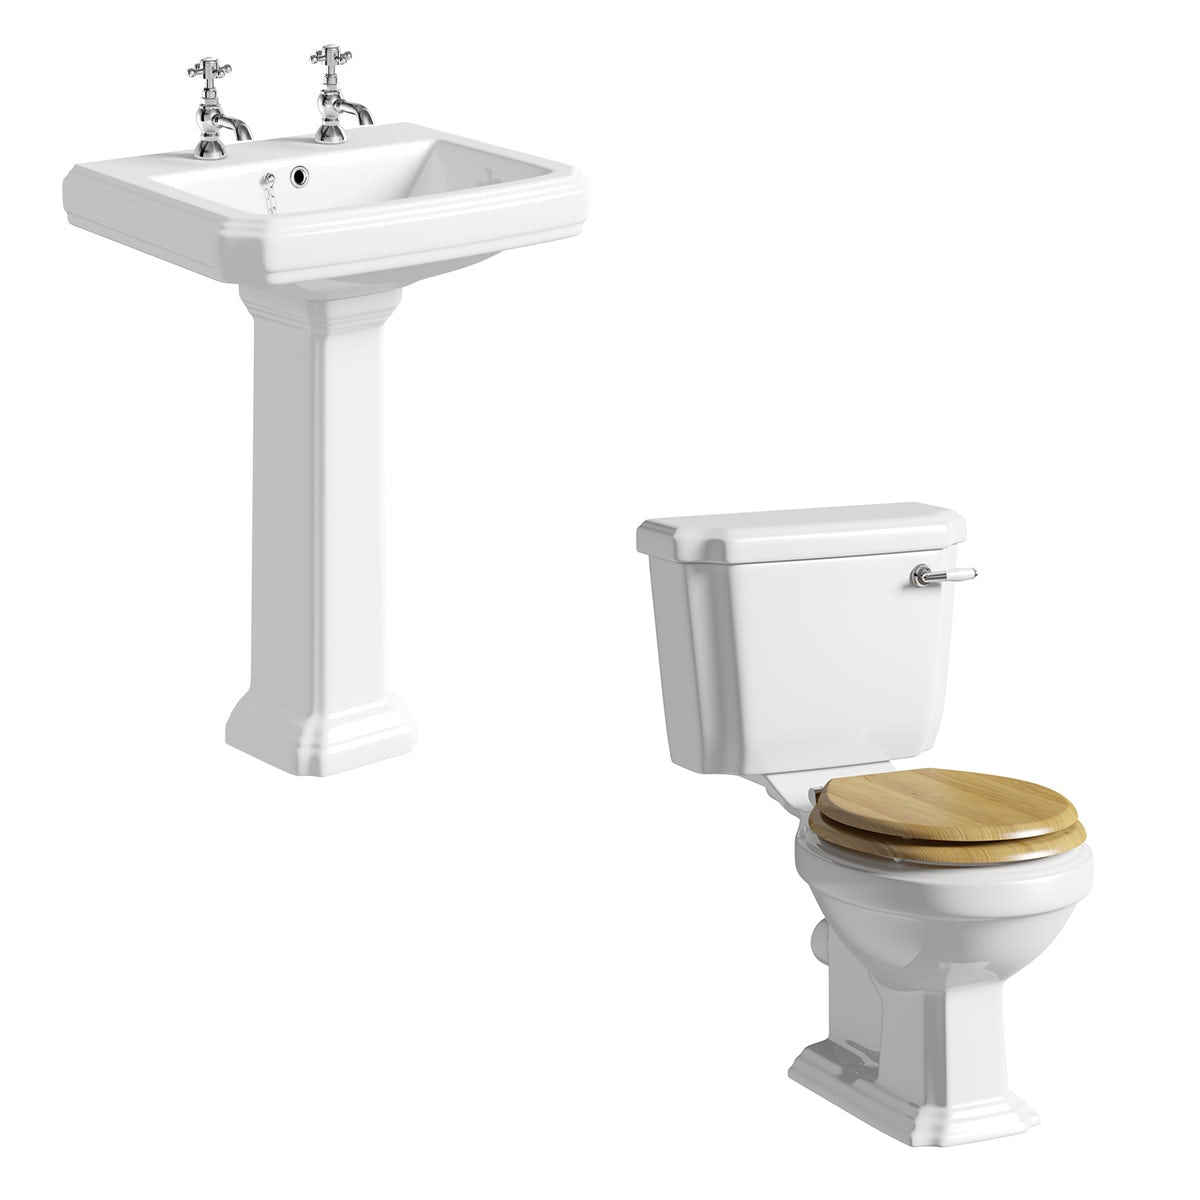 The Bath Co. Dulwich cloakroom suite with oak seat and full pedestal basin 615mm